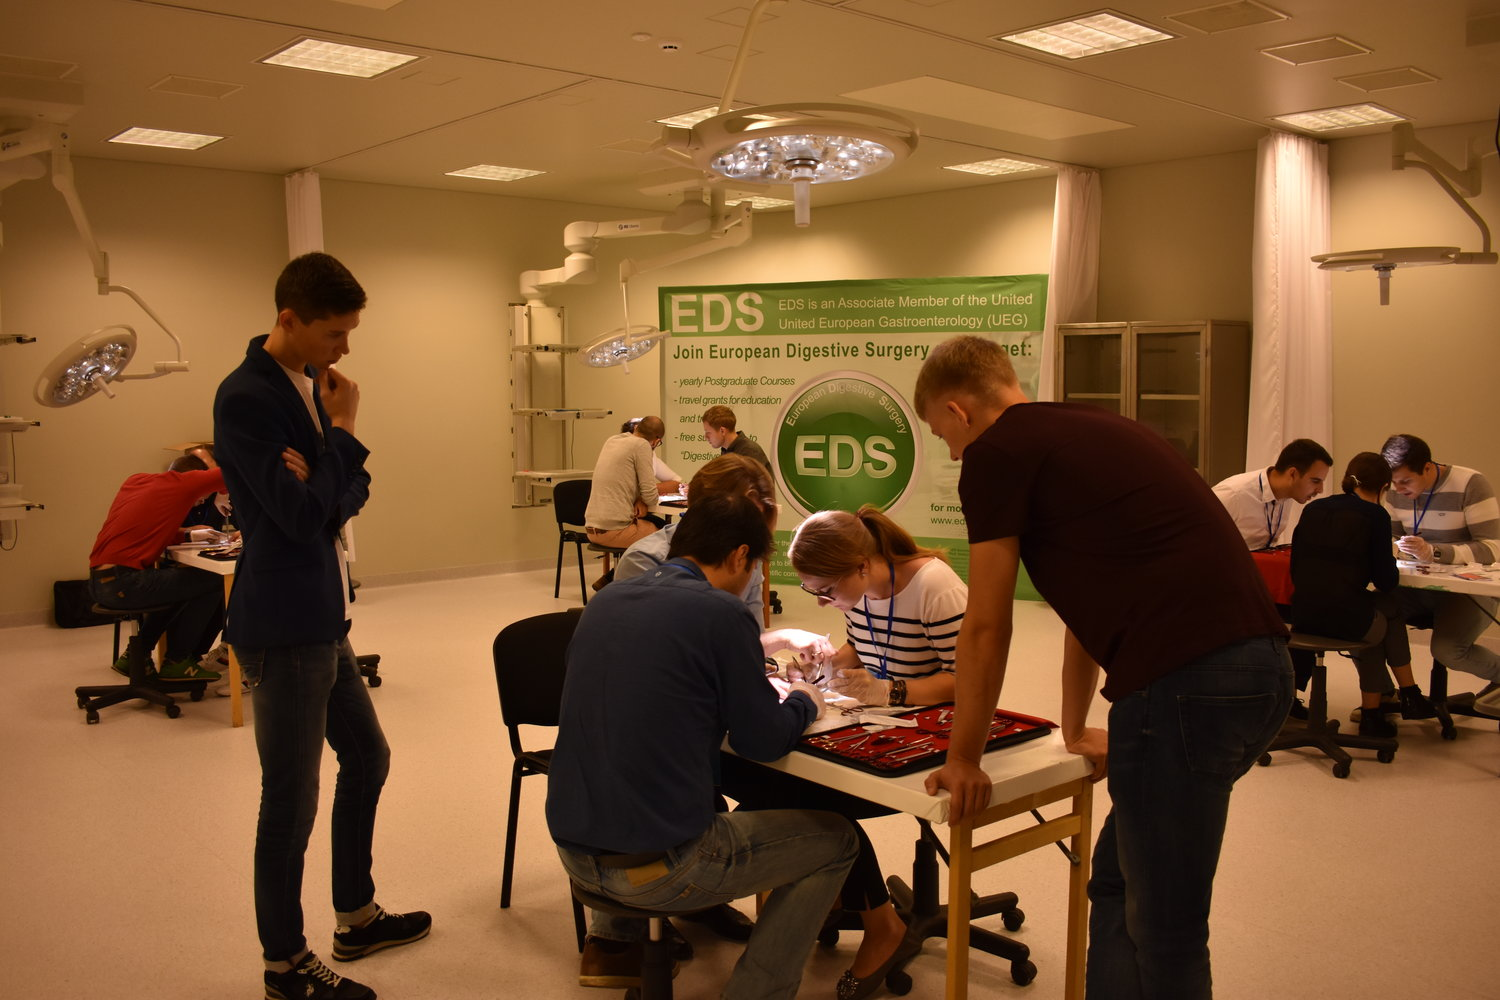 Impressions from the 2nd day of EDS Surgical Skills Course in Kaunas, Lithuania.